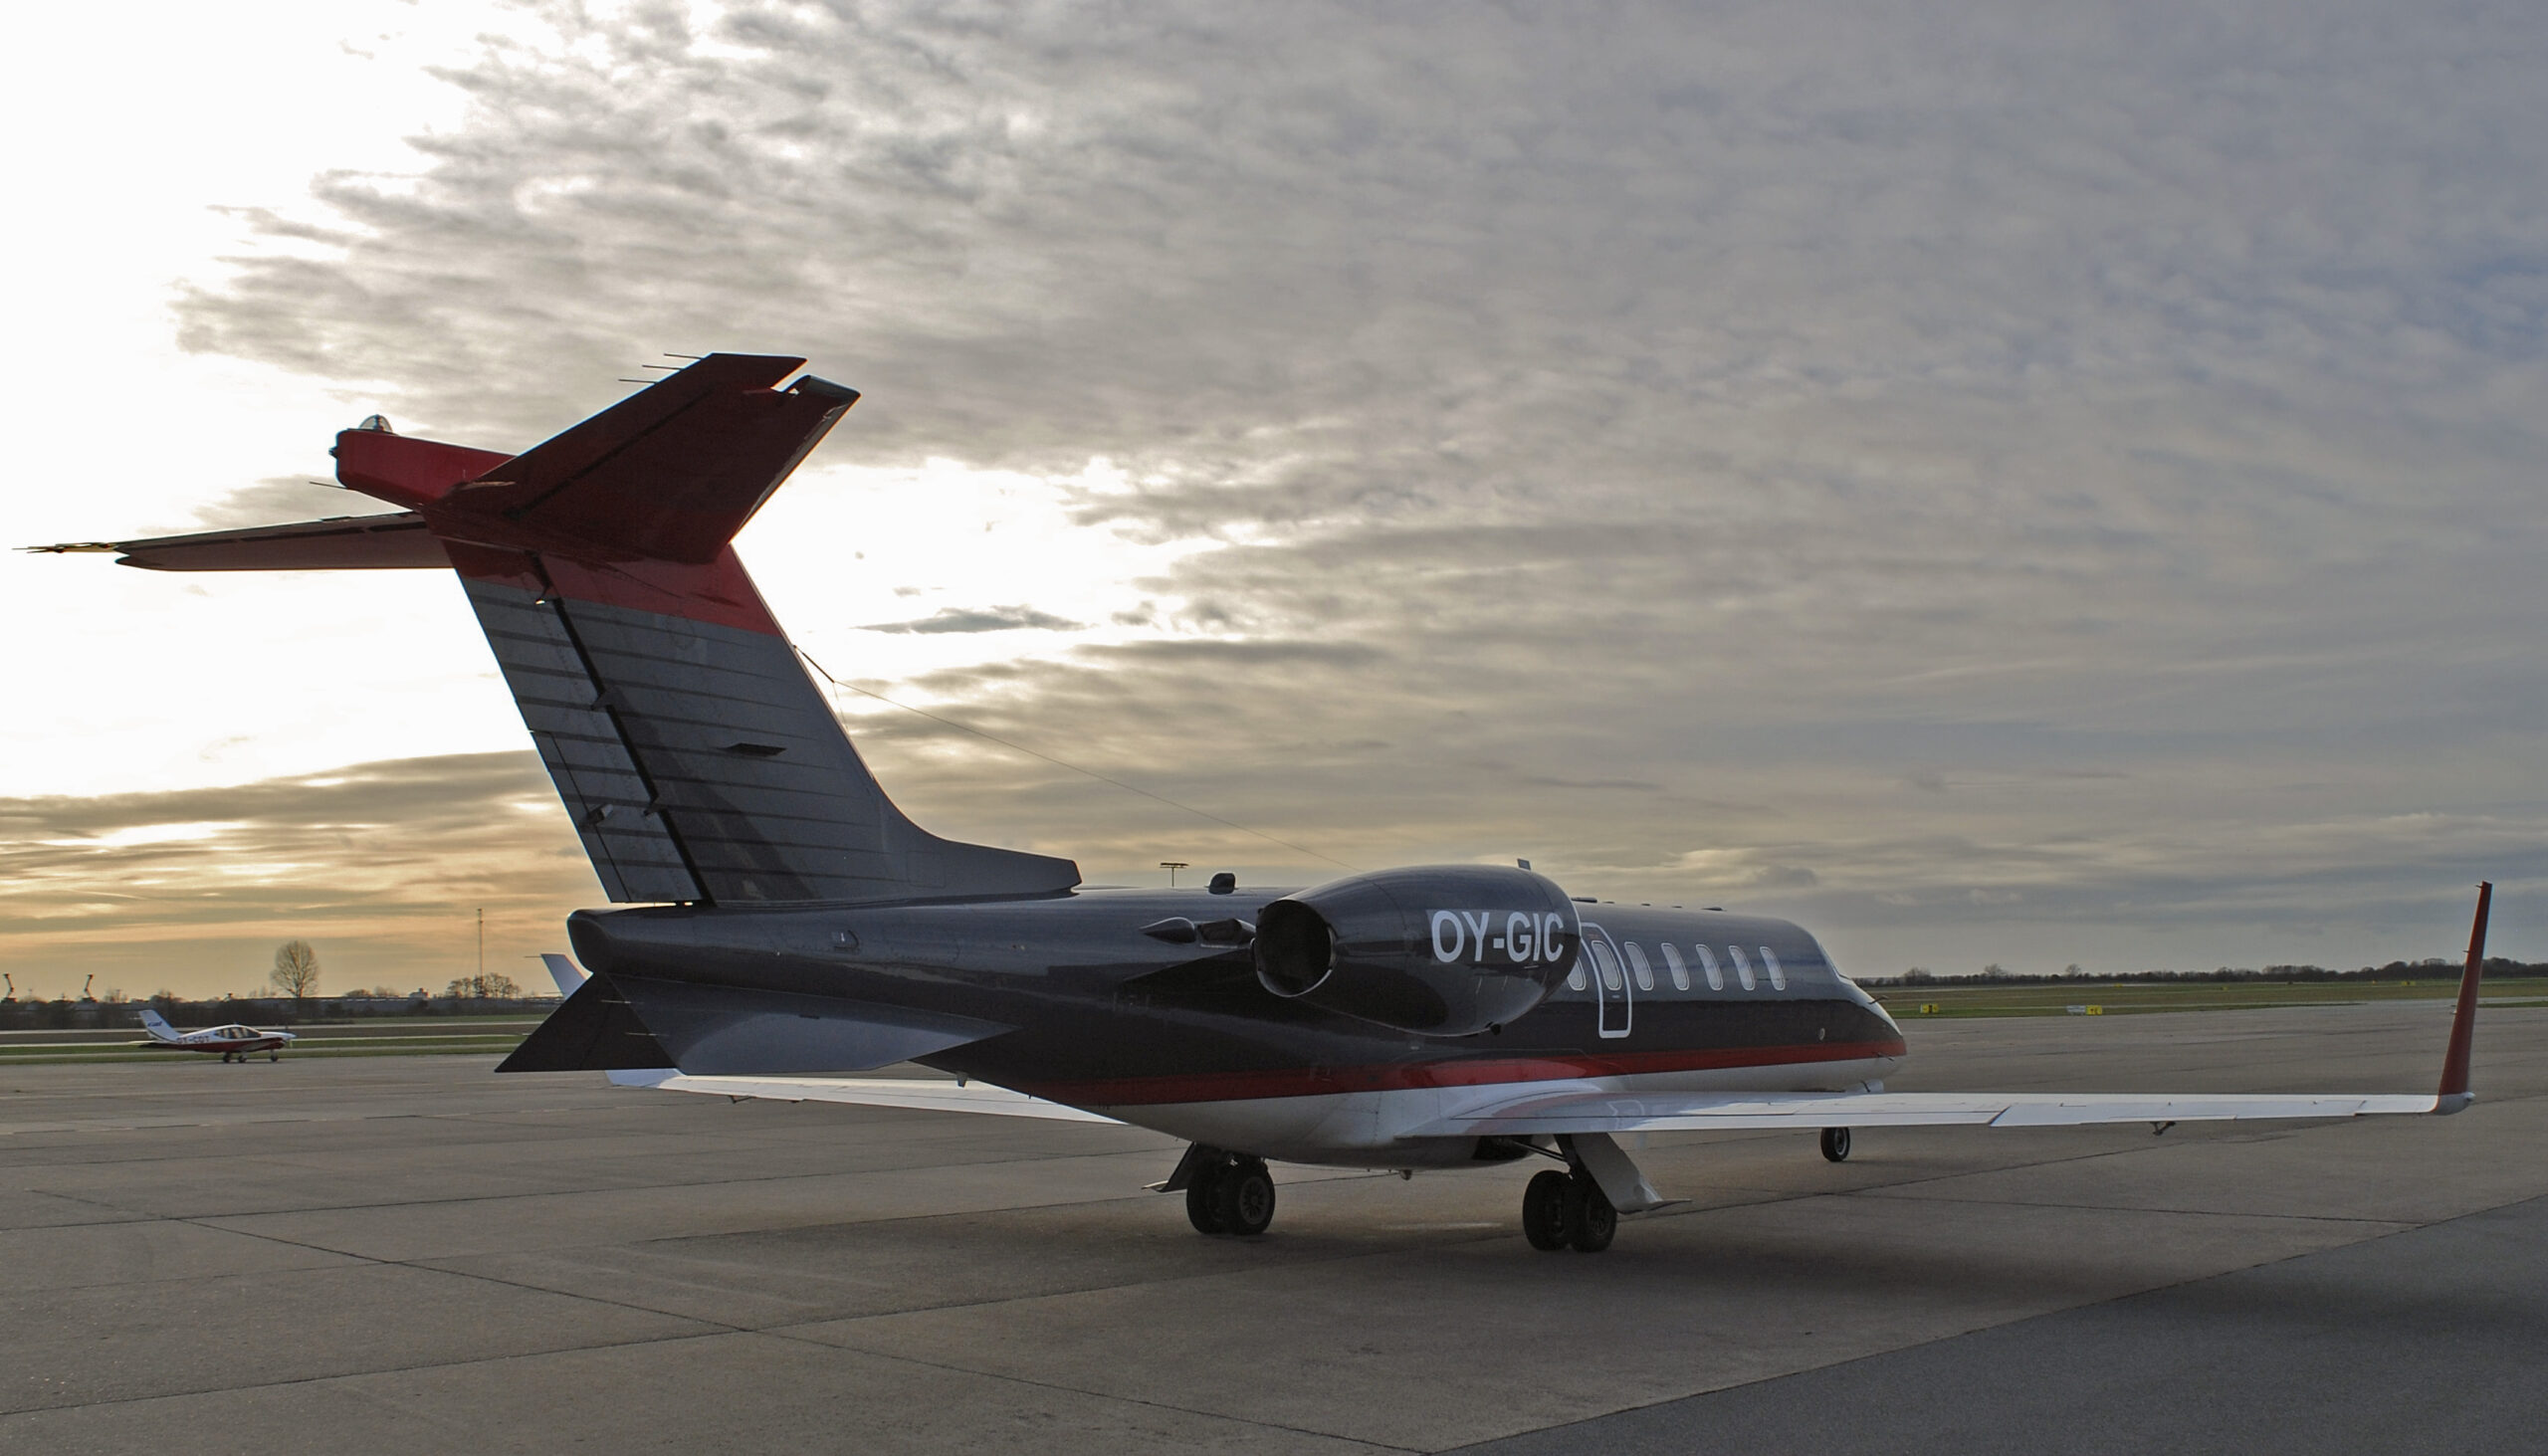 Learjet 45, OY-GIC, Right Side Back